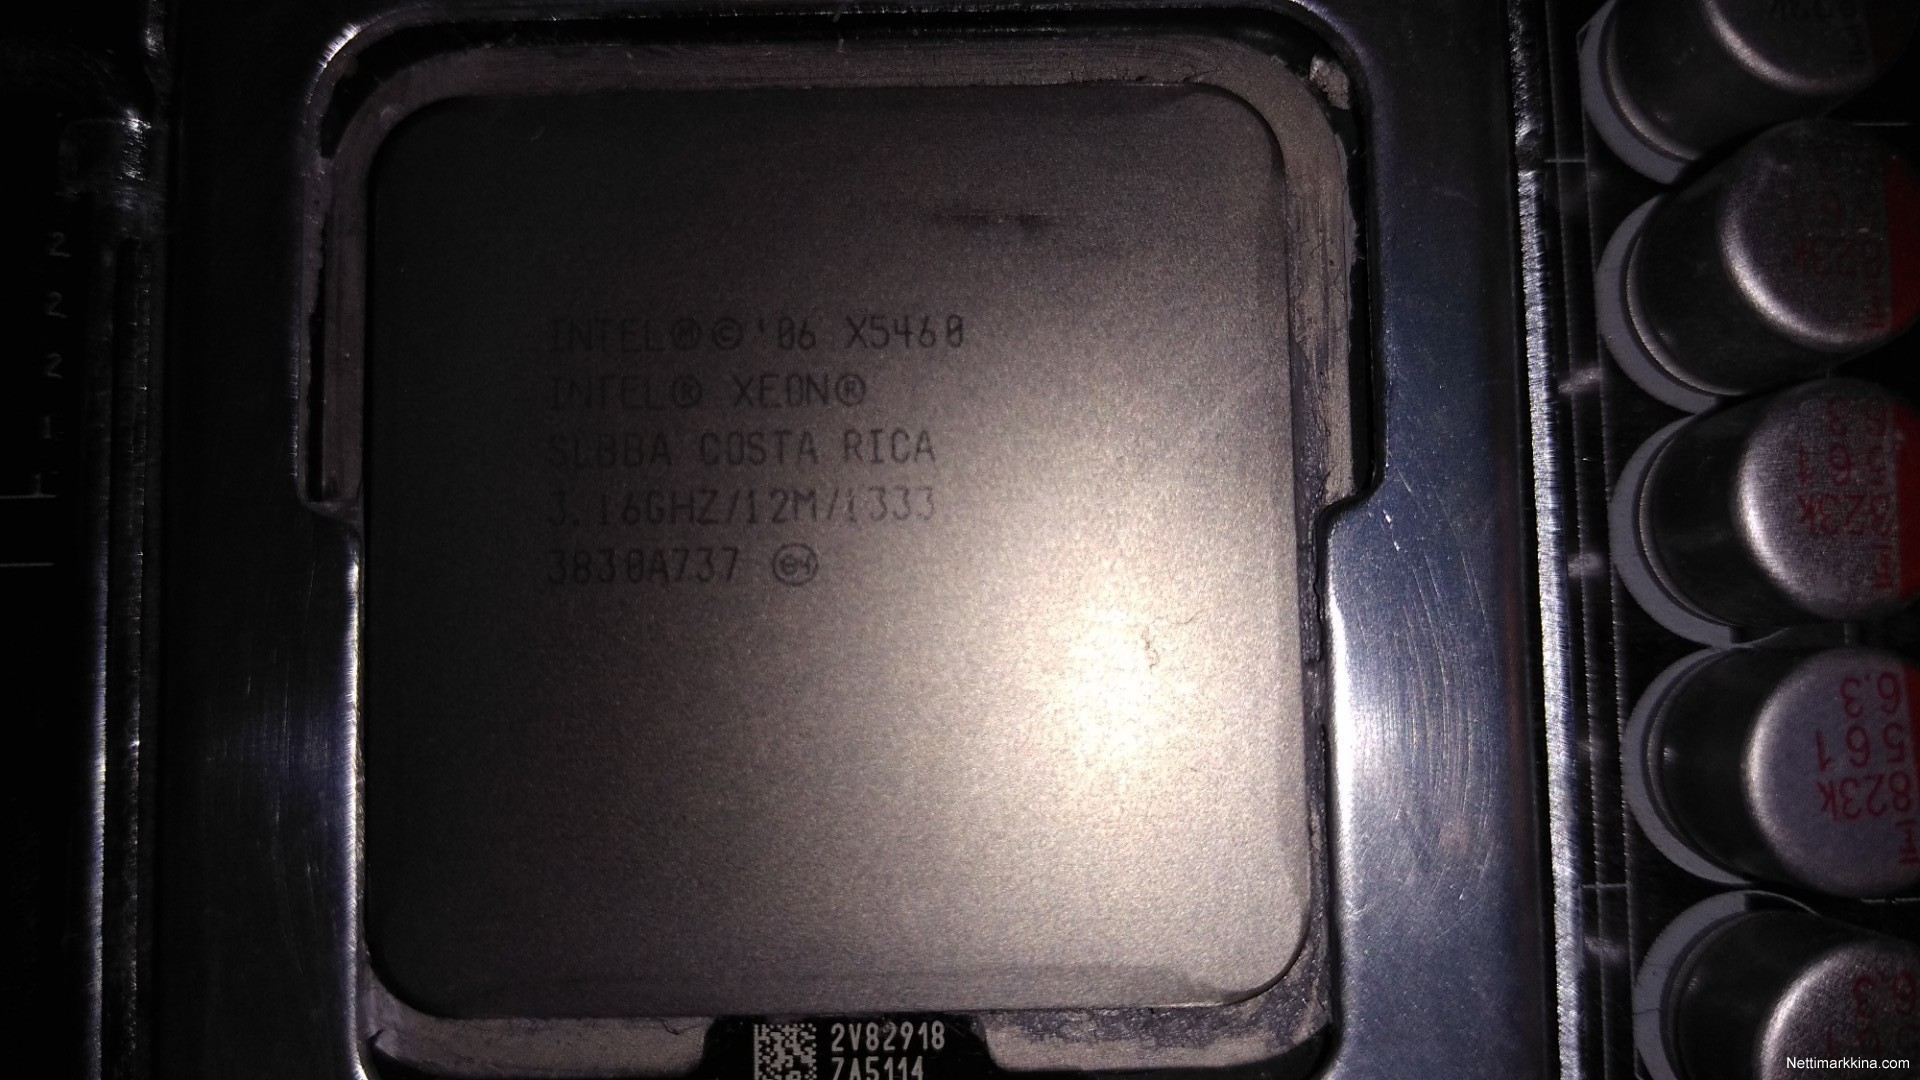 For sale Xeon x5460, P5q-e, 8gb 1066 ddr2, Not priced